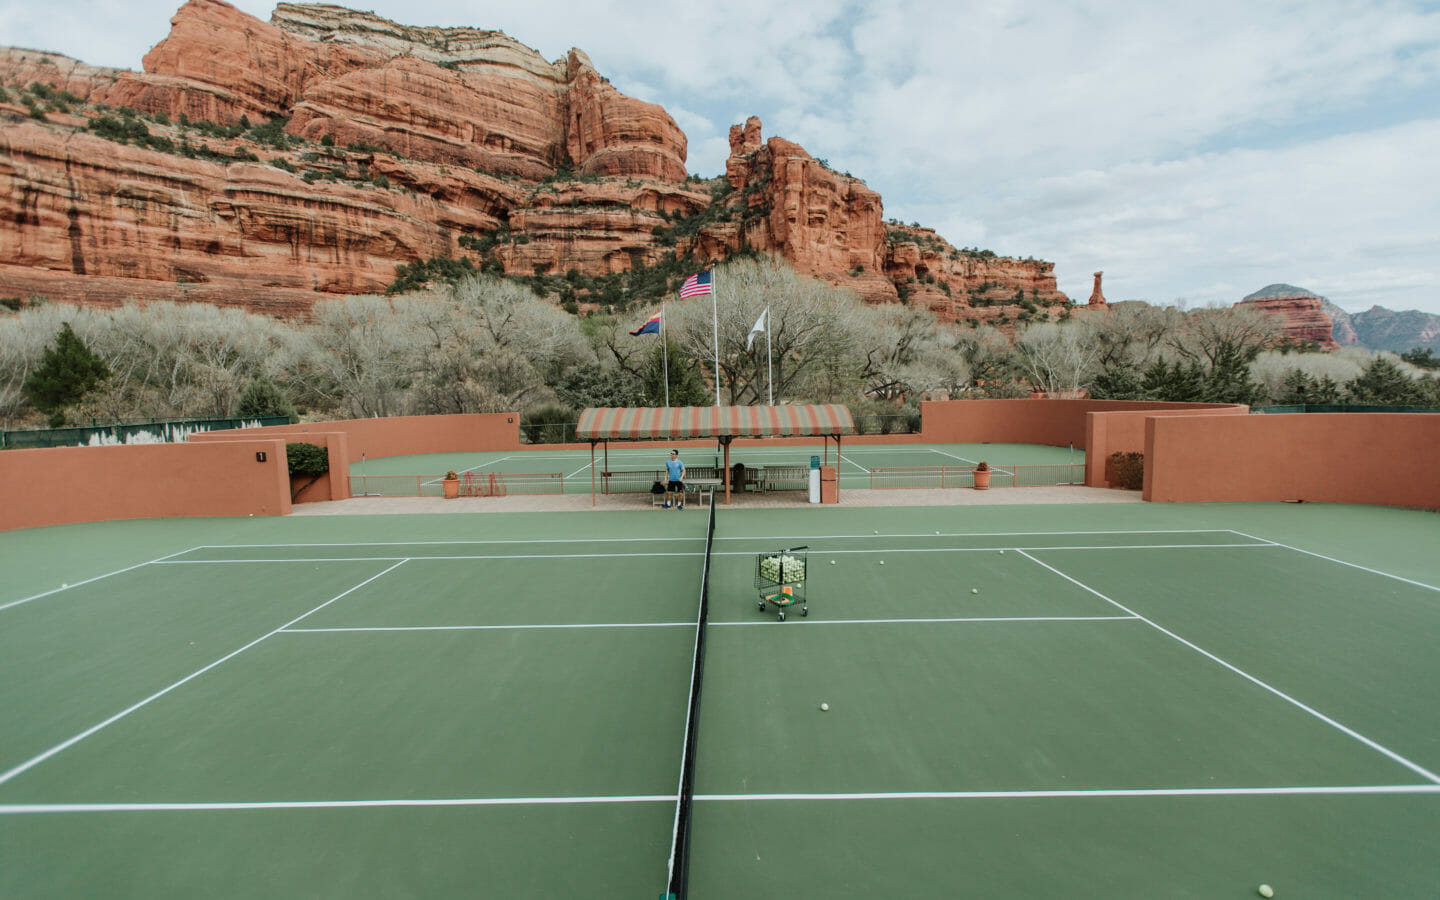 tennis courts below a rock formation surrounded by trees